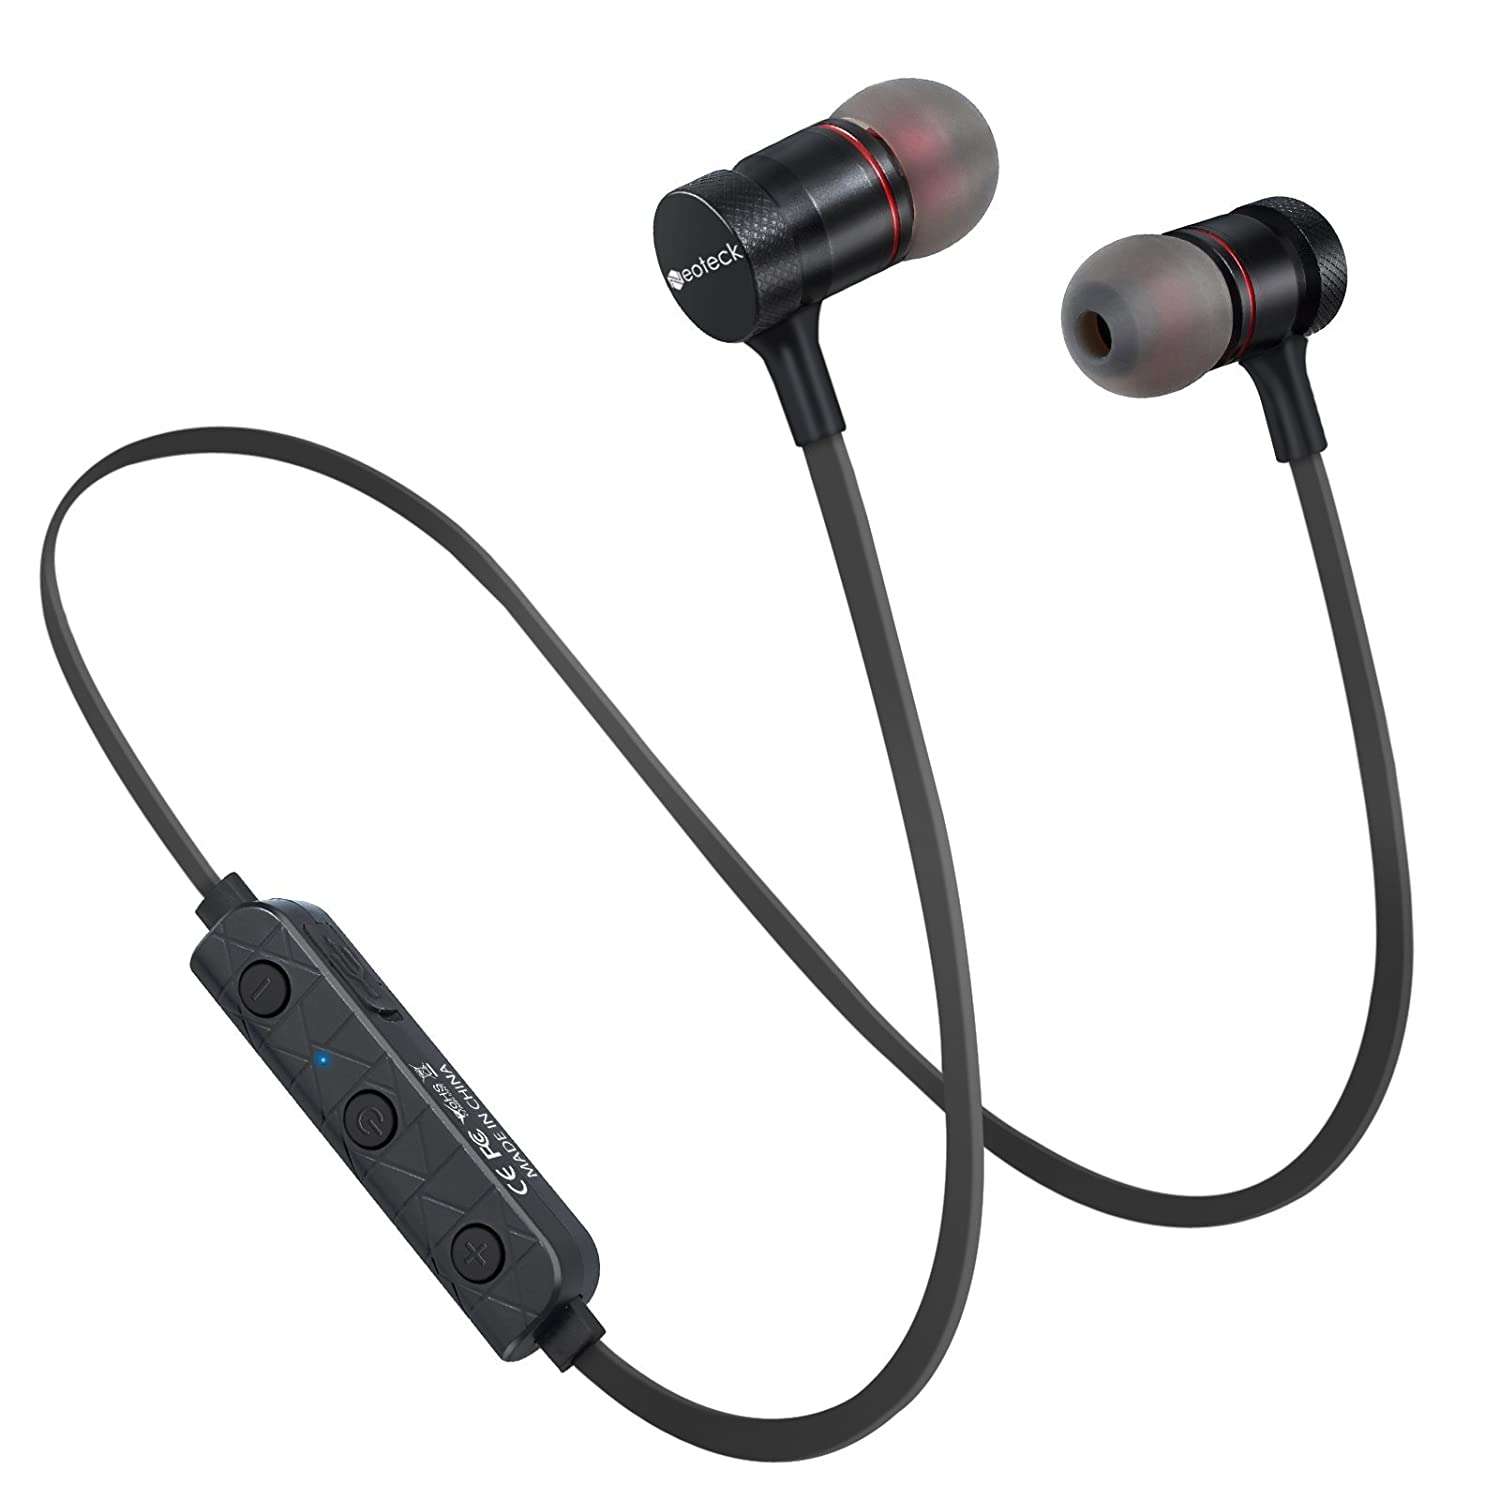 1f62710ab57 Neoteck Magnetic Bluetooth4.1 Headphones Sport Wireless Headset Metal  In-Ear Stereo Earbuds Earphone for iPhone 7 7Plus 6S 6 Plus 5S 5 SE Samsung  Galaxy S7 ...